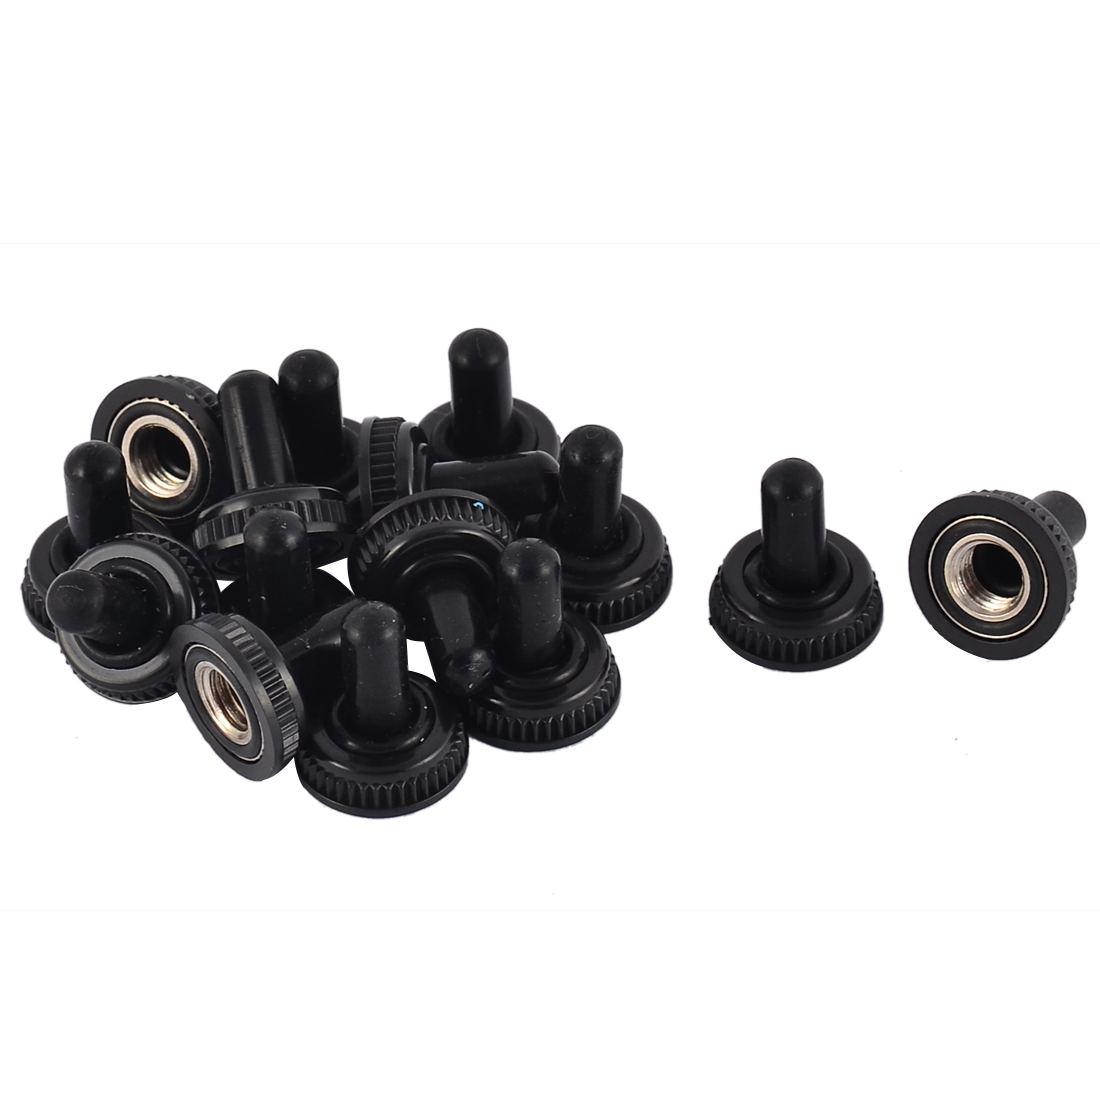 Rubber Insulating Rocker Toggle Switch Knob Boot Cover Cap Black 15pcs